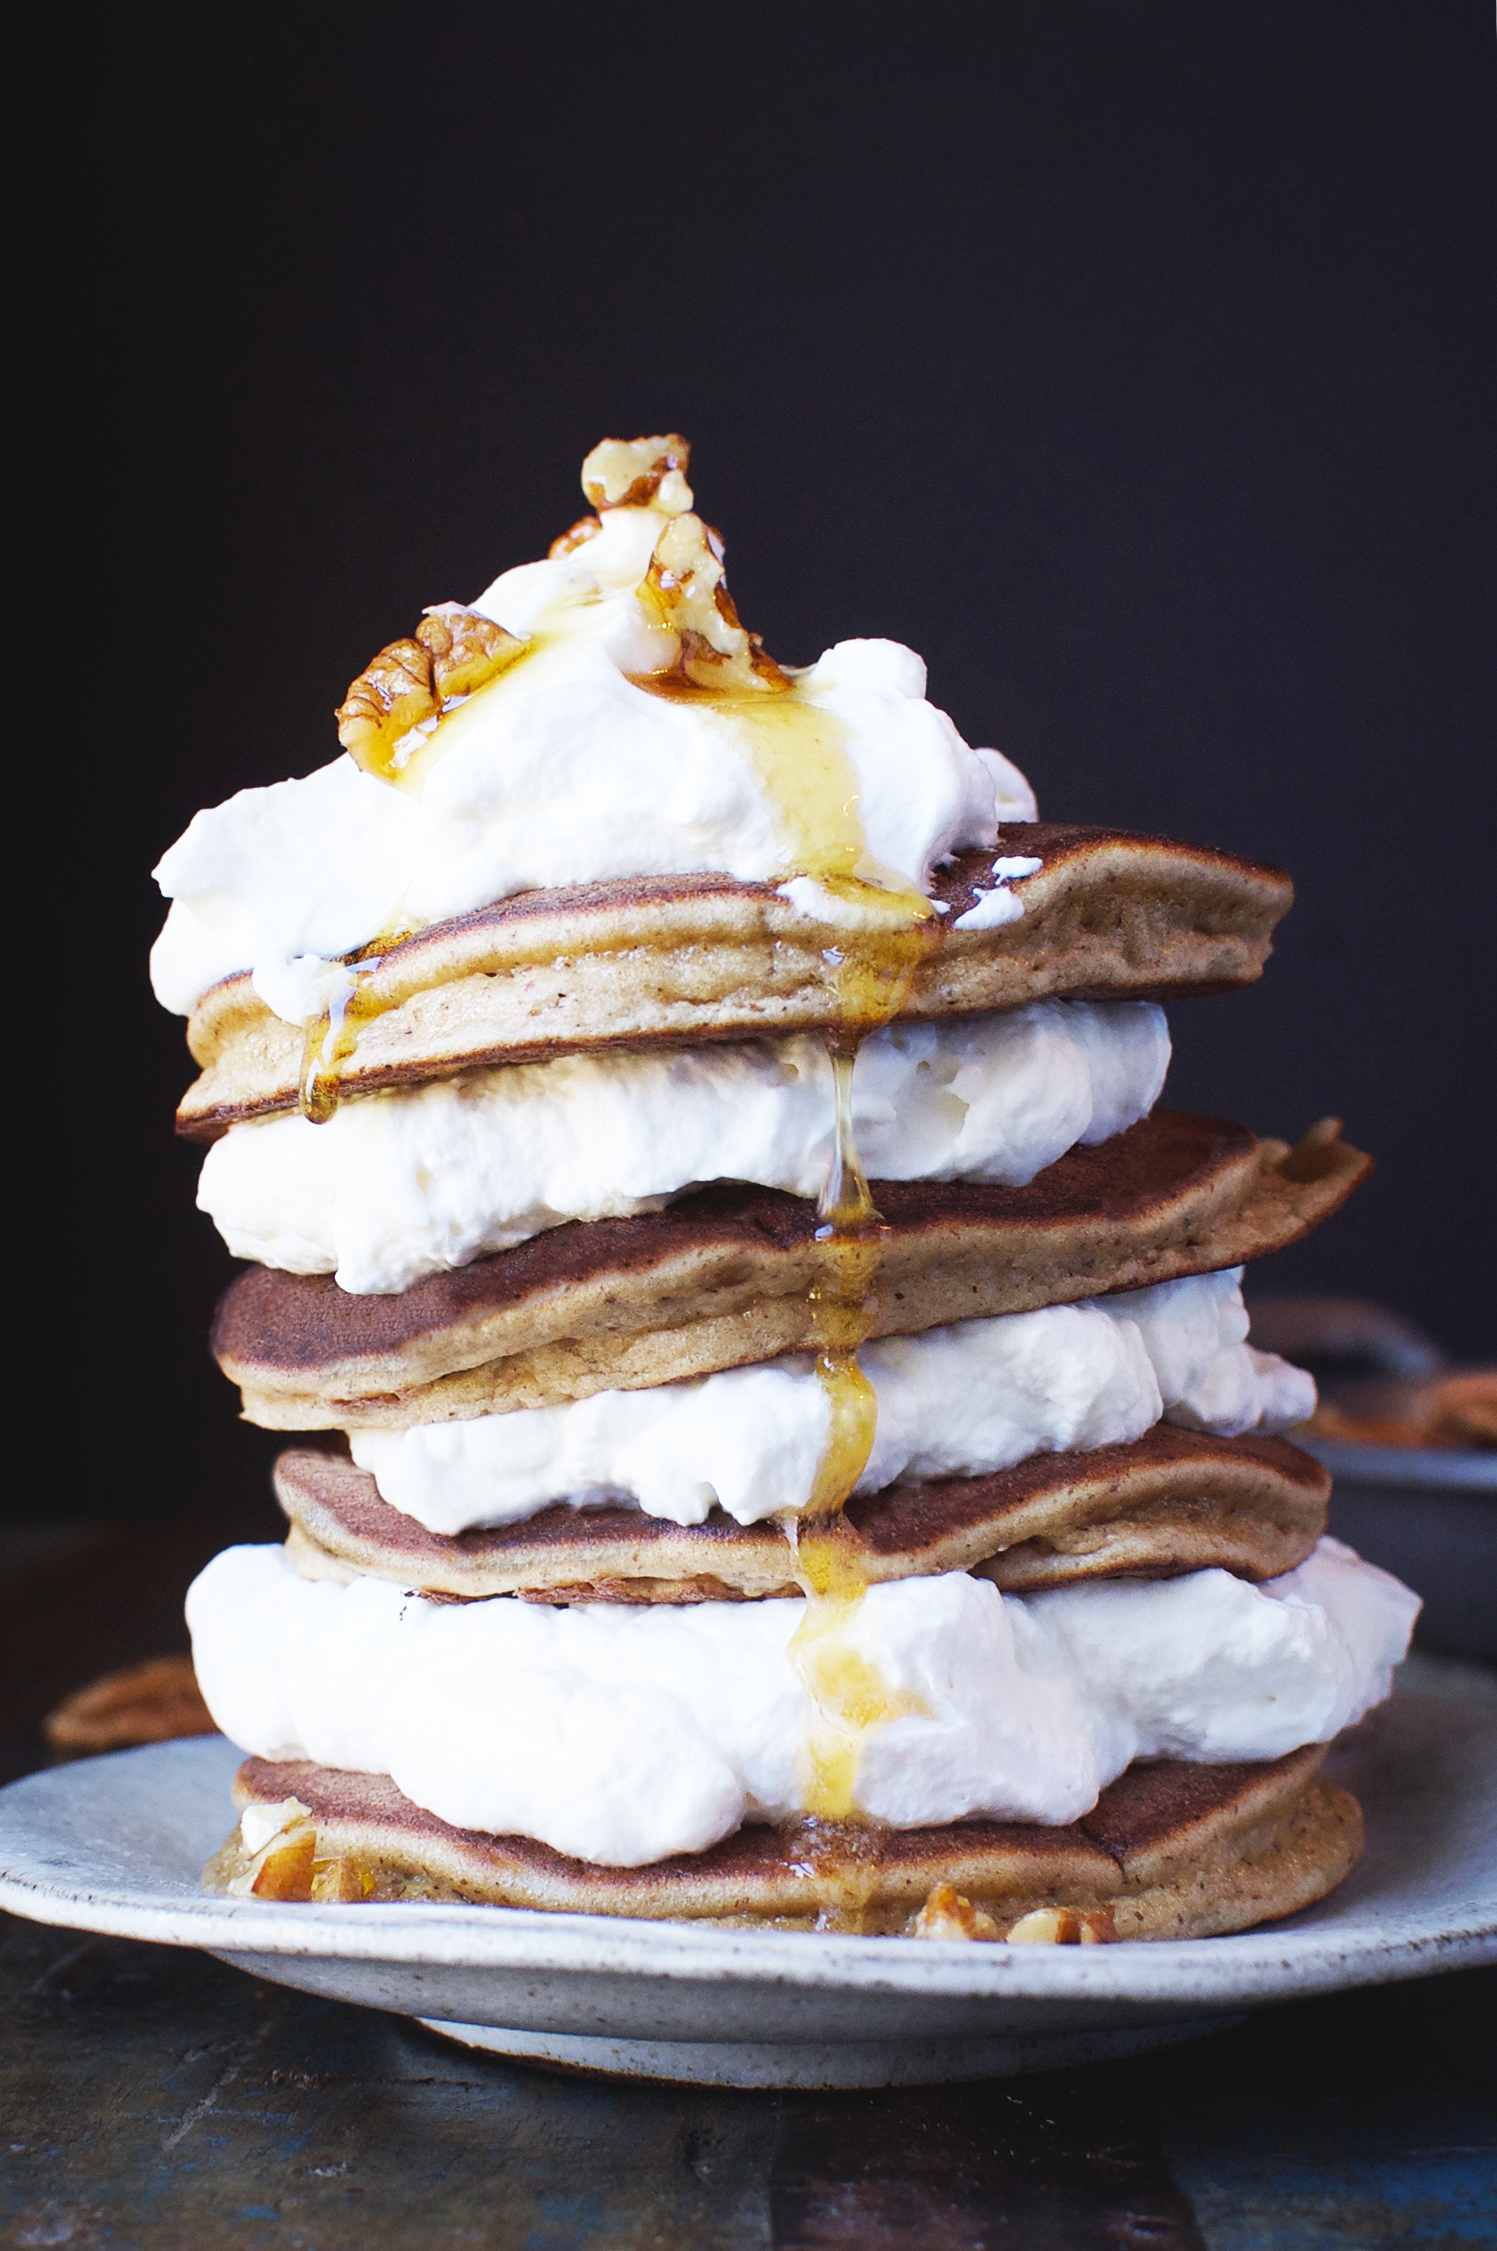 Low-Carb Banana Nut Pancakes stacked with whipped cream between, and syrup running over the top and down the sides.